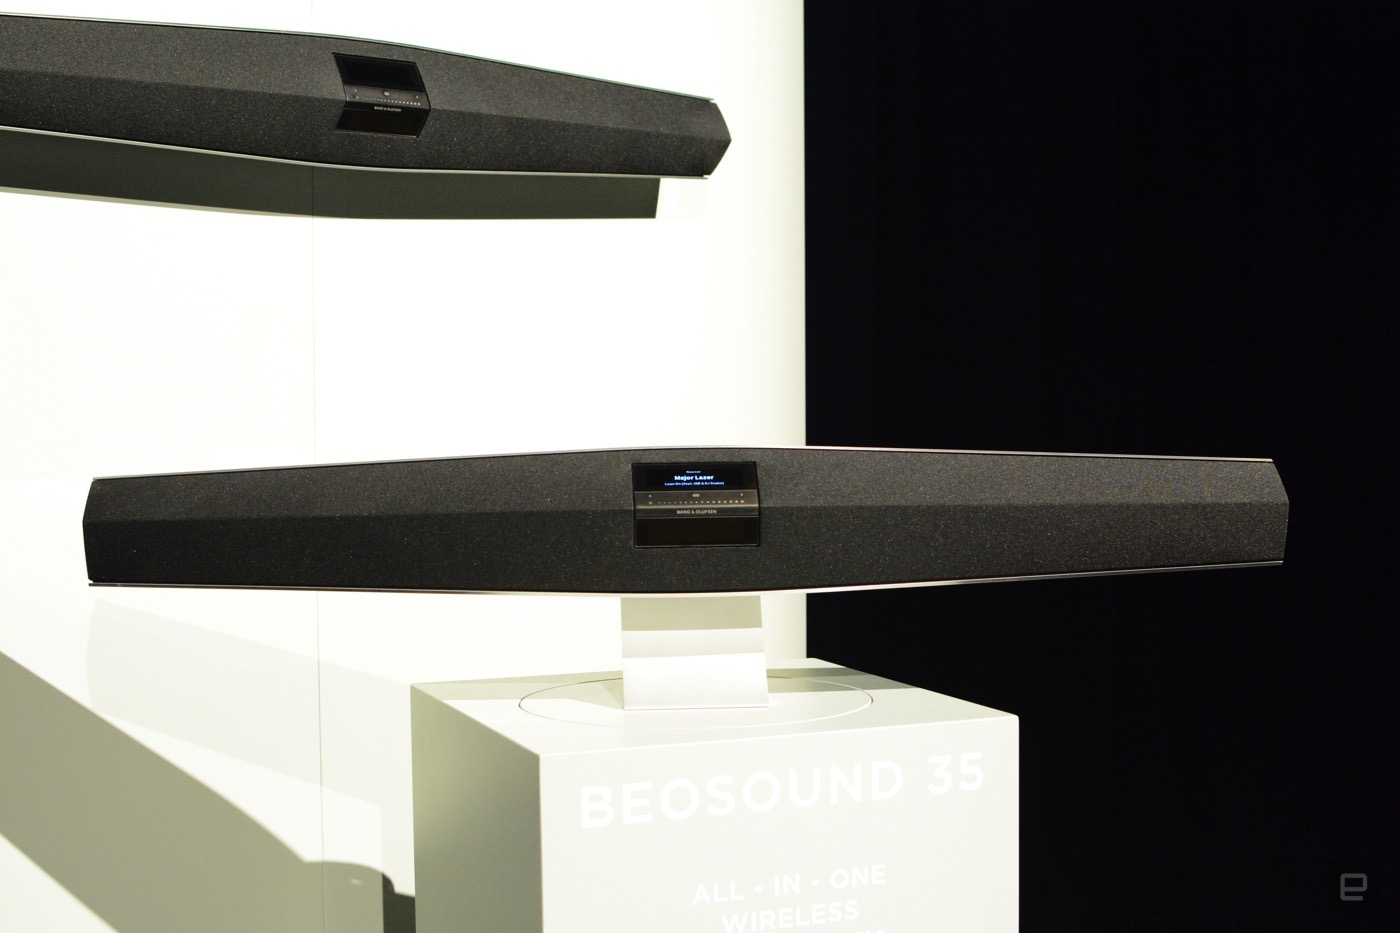 Bang and Olufsen's BeoSound 35 is an 'all-in-one' soundbar